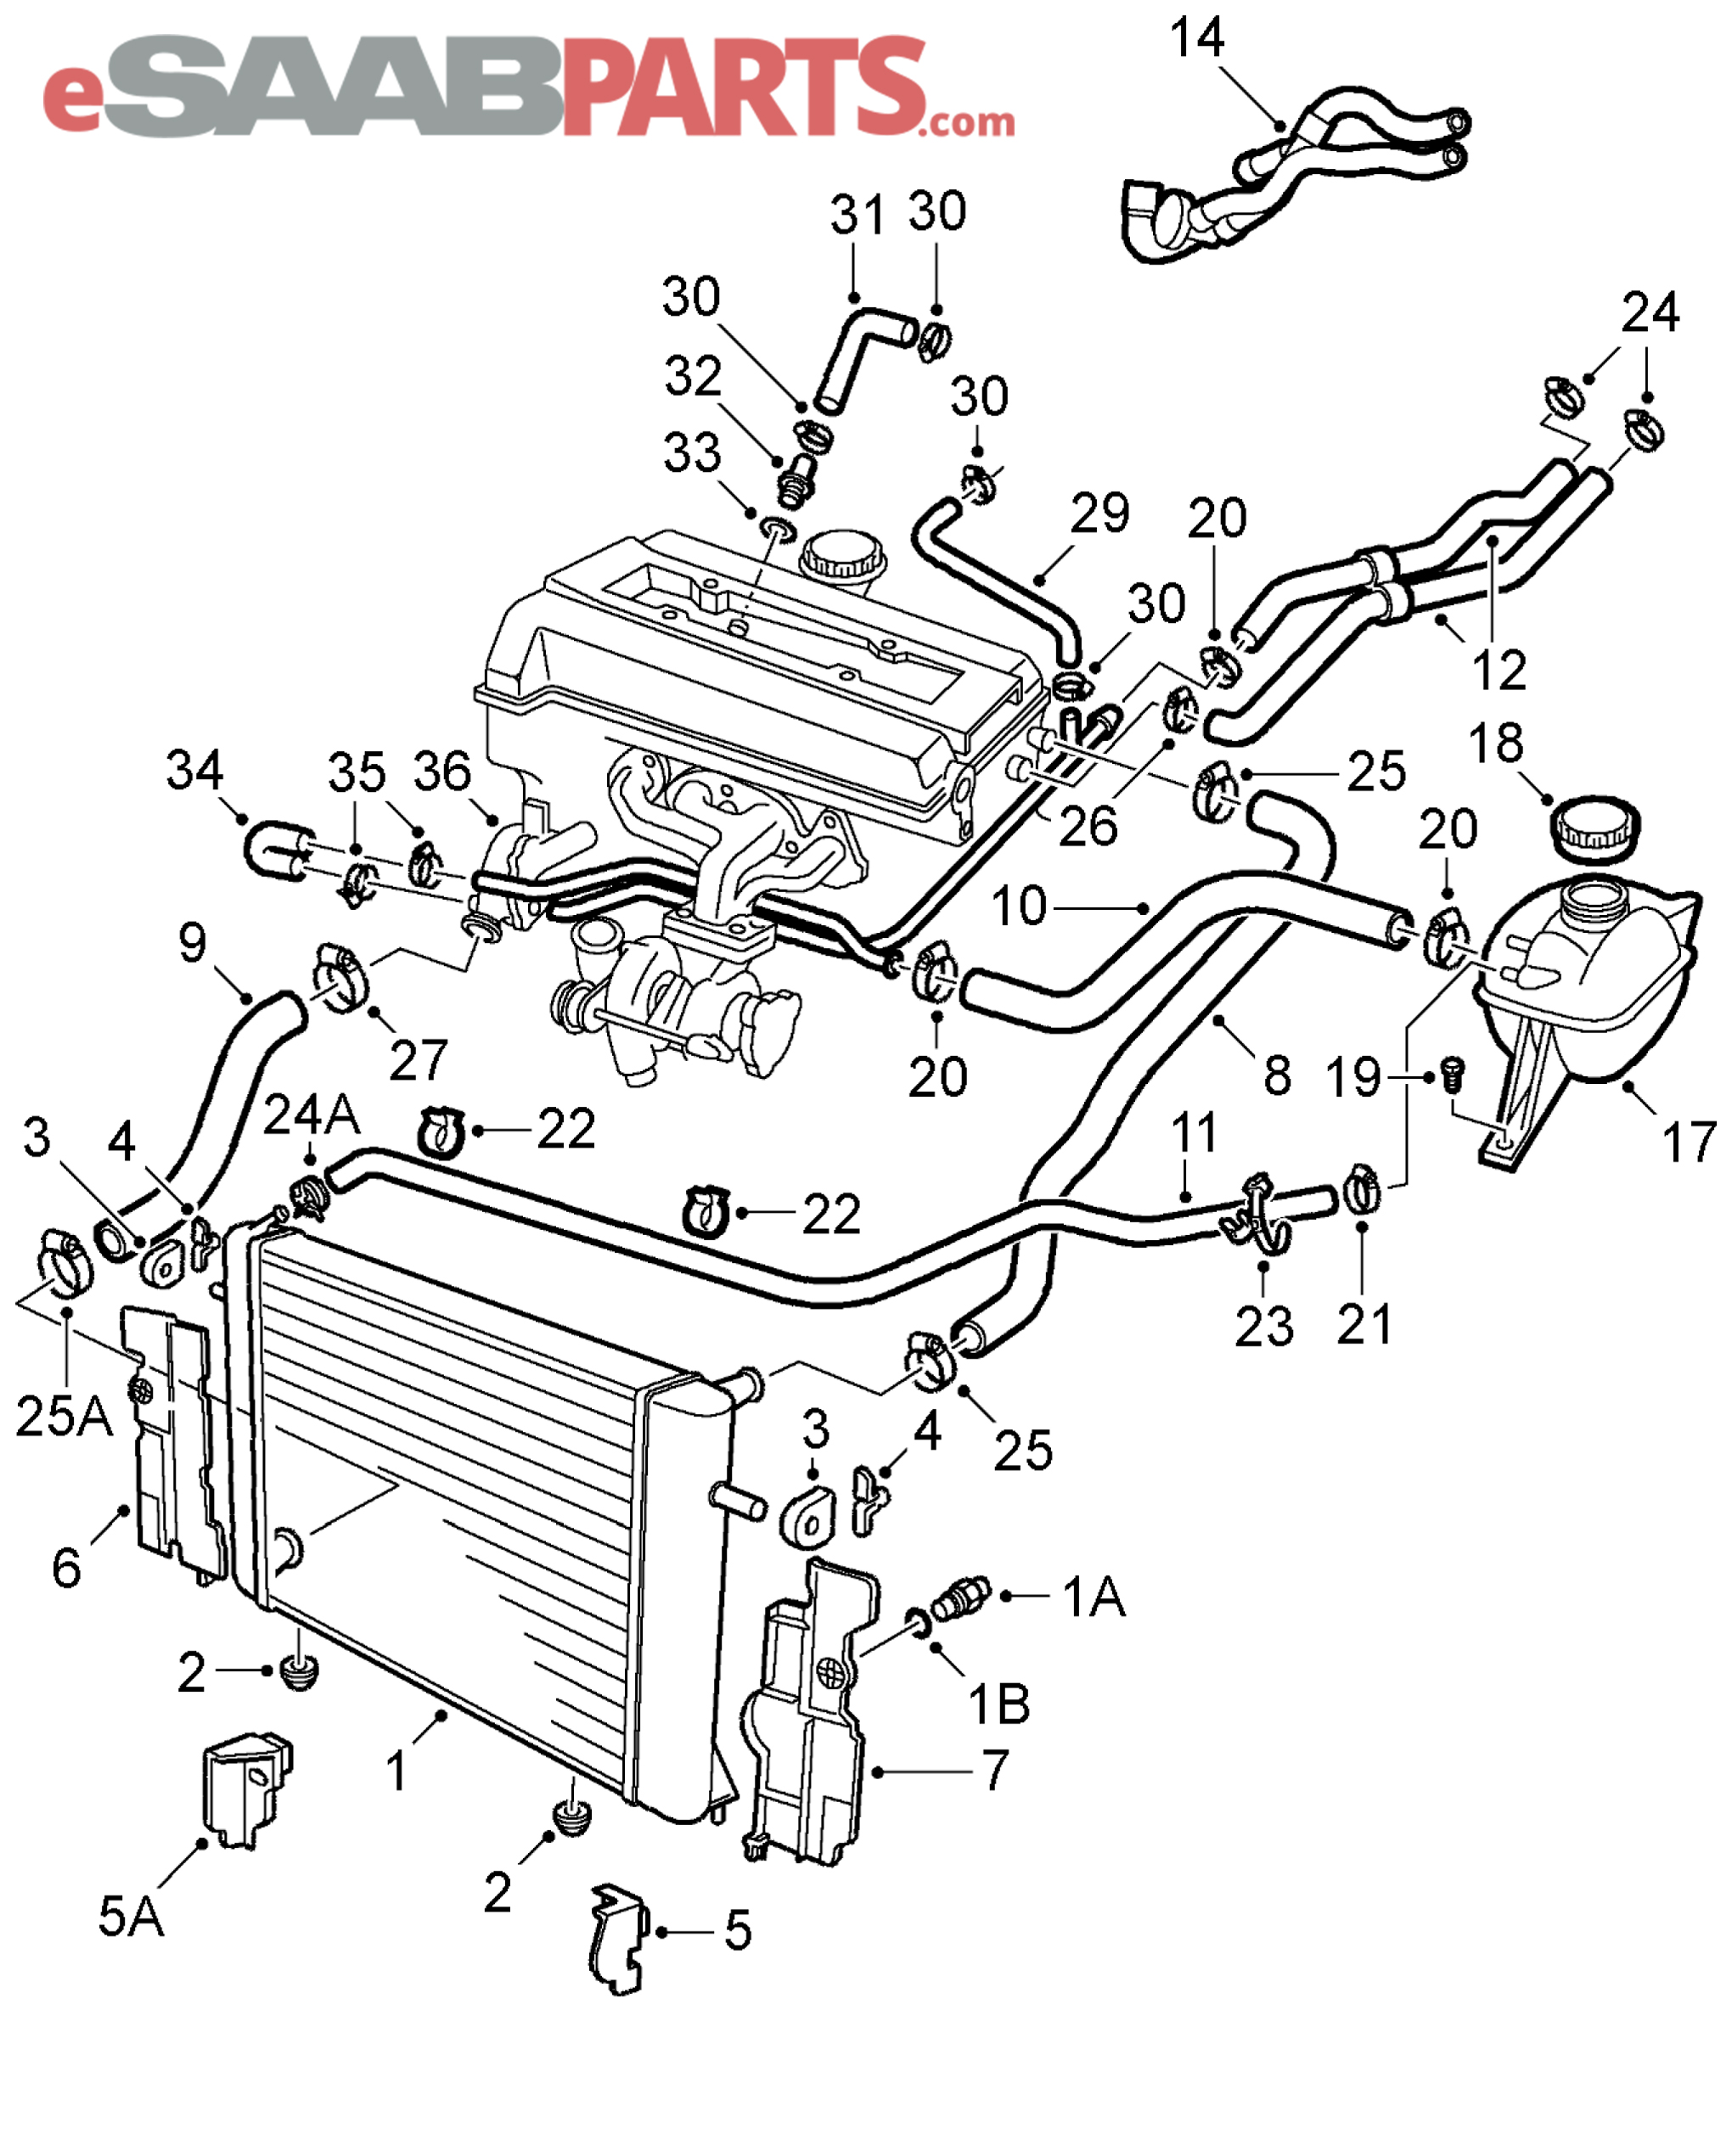 Wiring Diagram: 31 Saab 9 3 Wiring Diagram